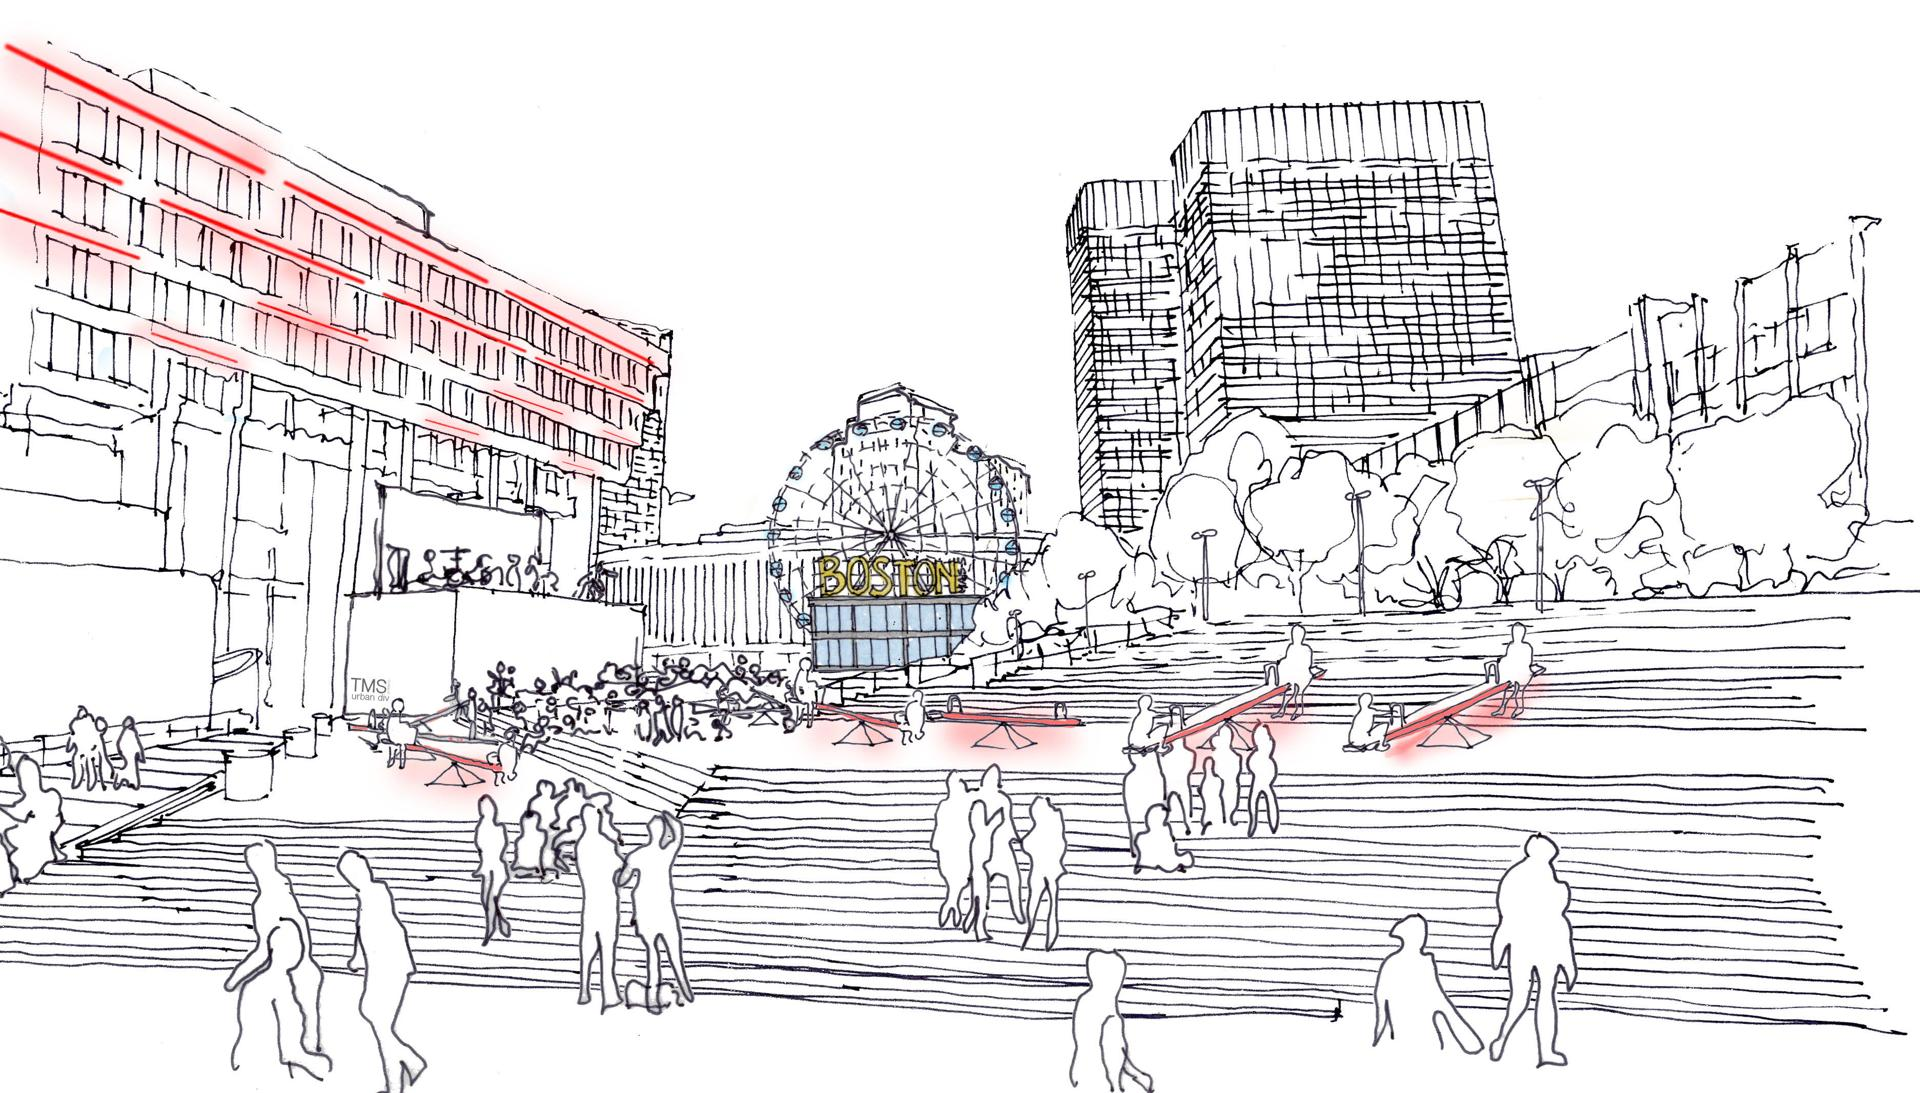 ferris wheel and winter skating proposed for new city hall plaza